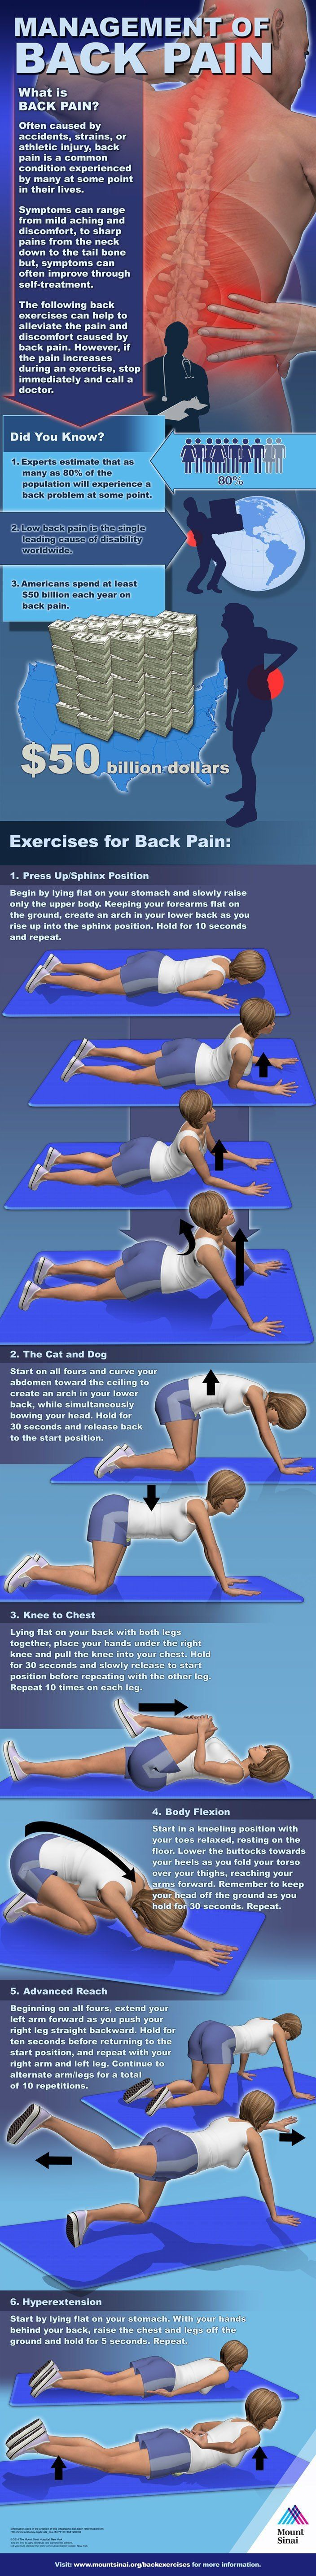 6-exercises-for-lower-back-pain-relief